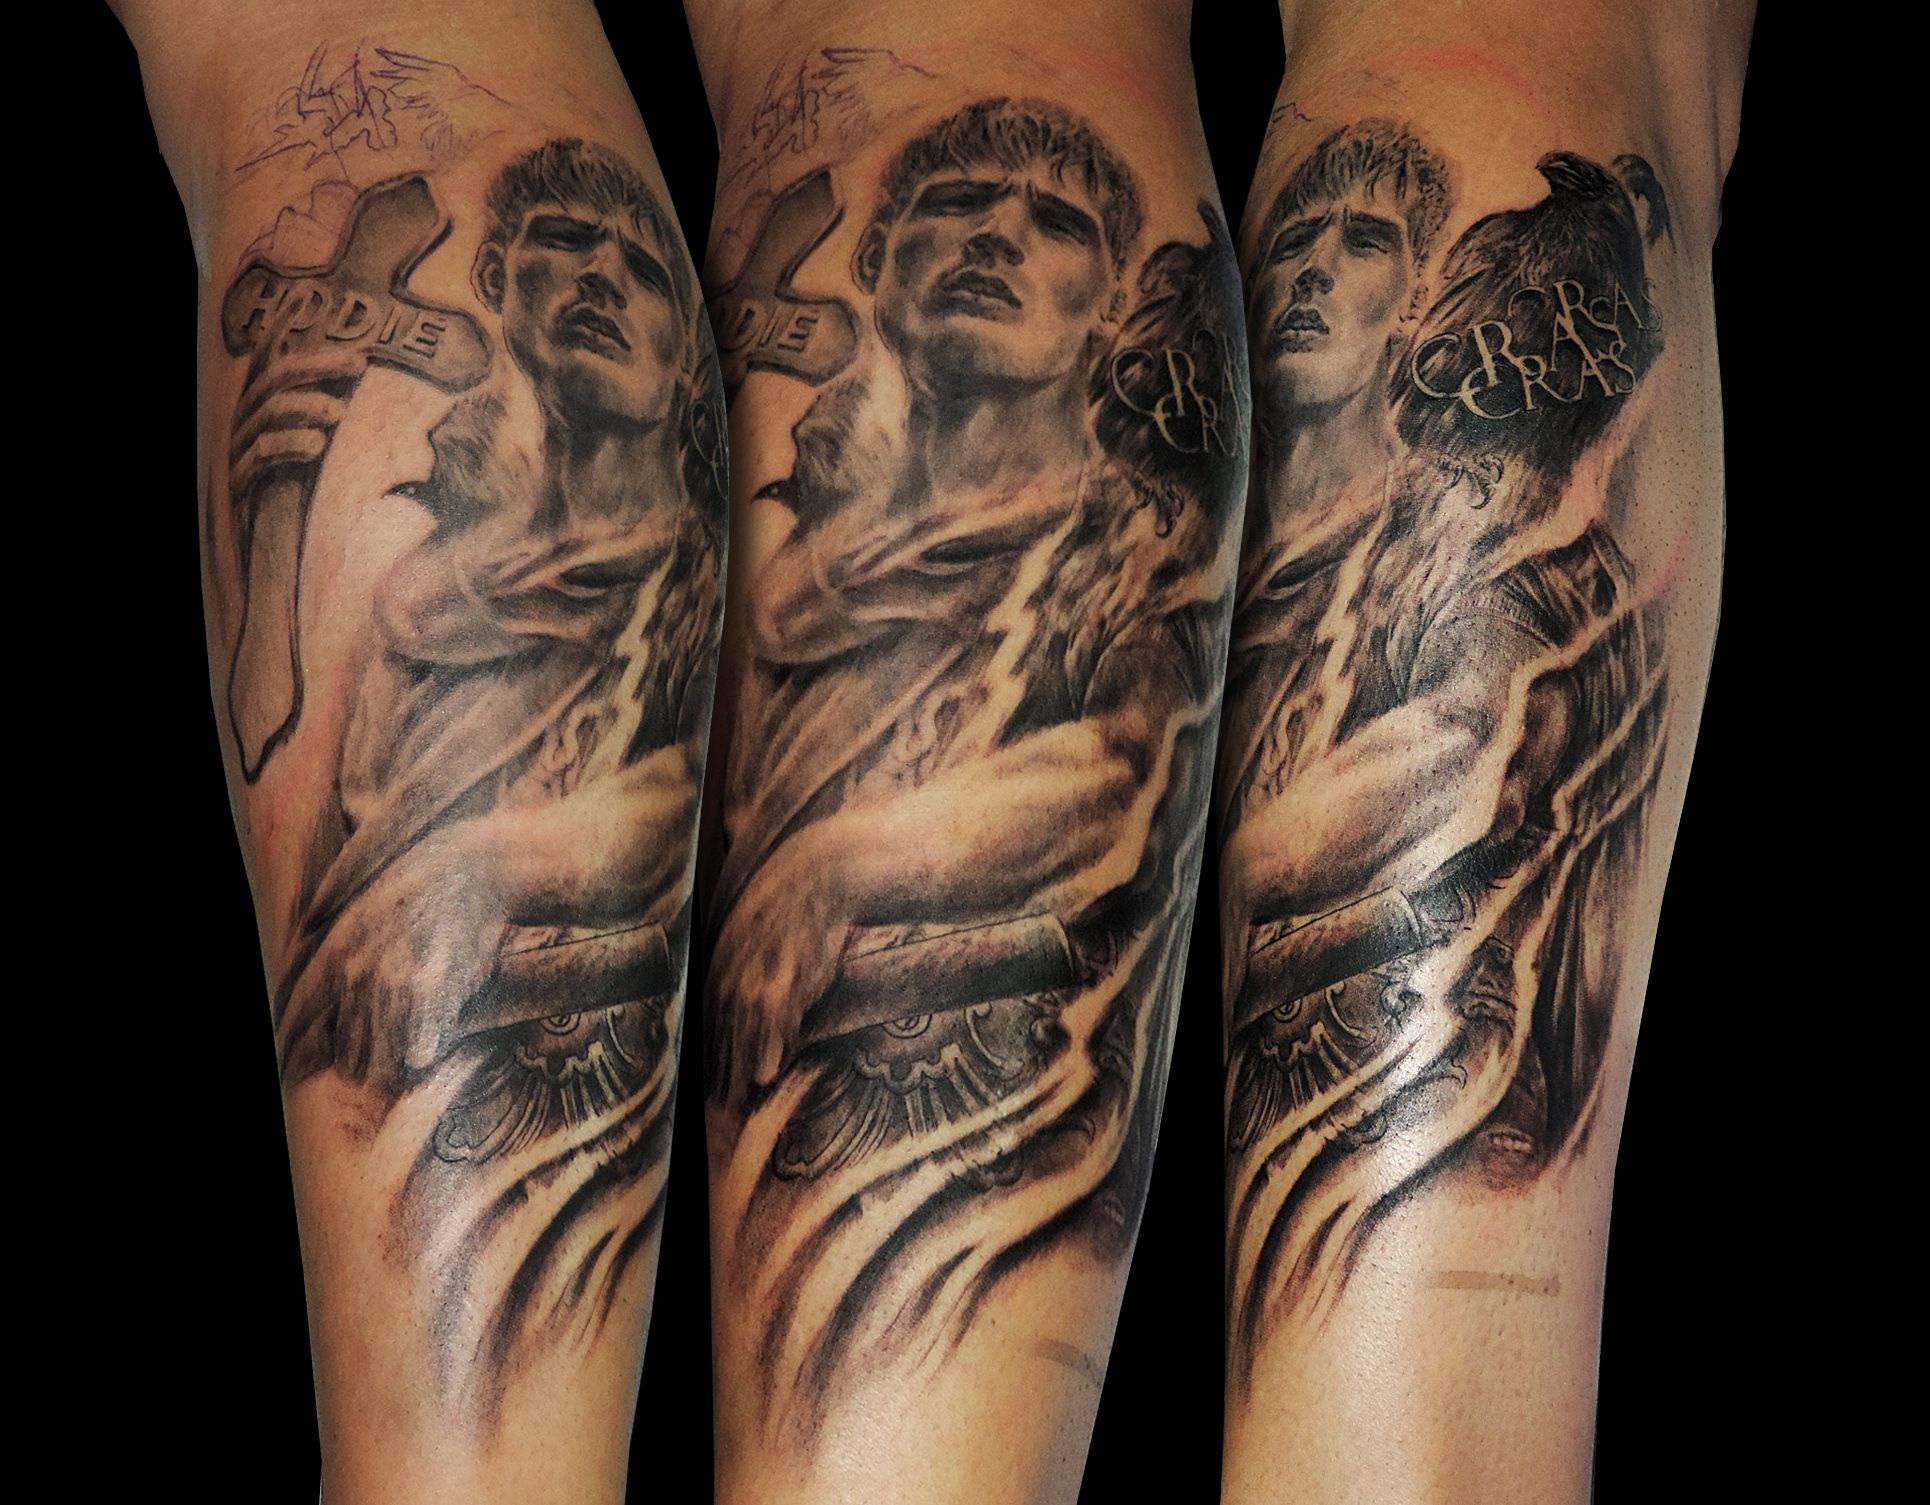 Saint Expedite Tattoo San Expedito Tattoo Sanexpedito Tattoos